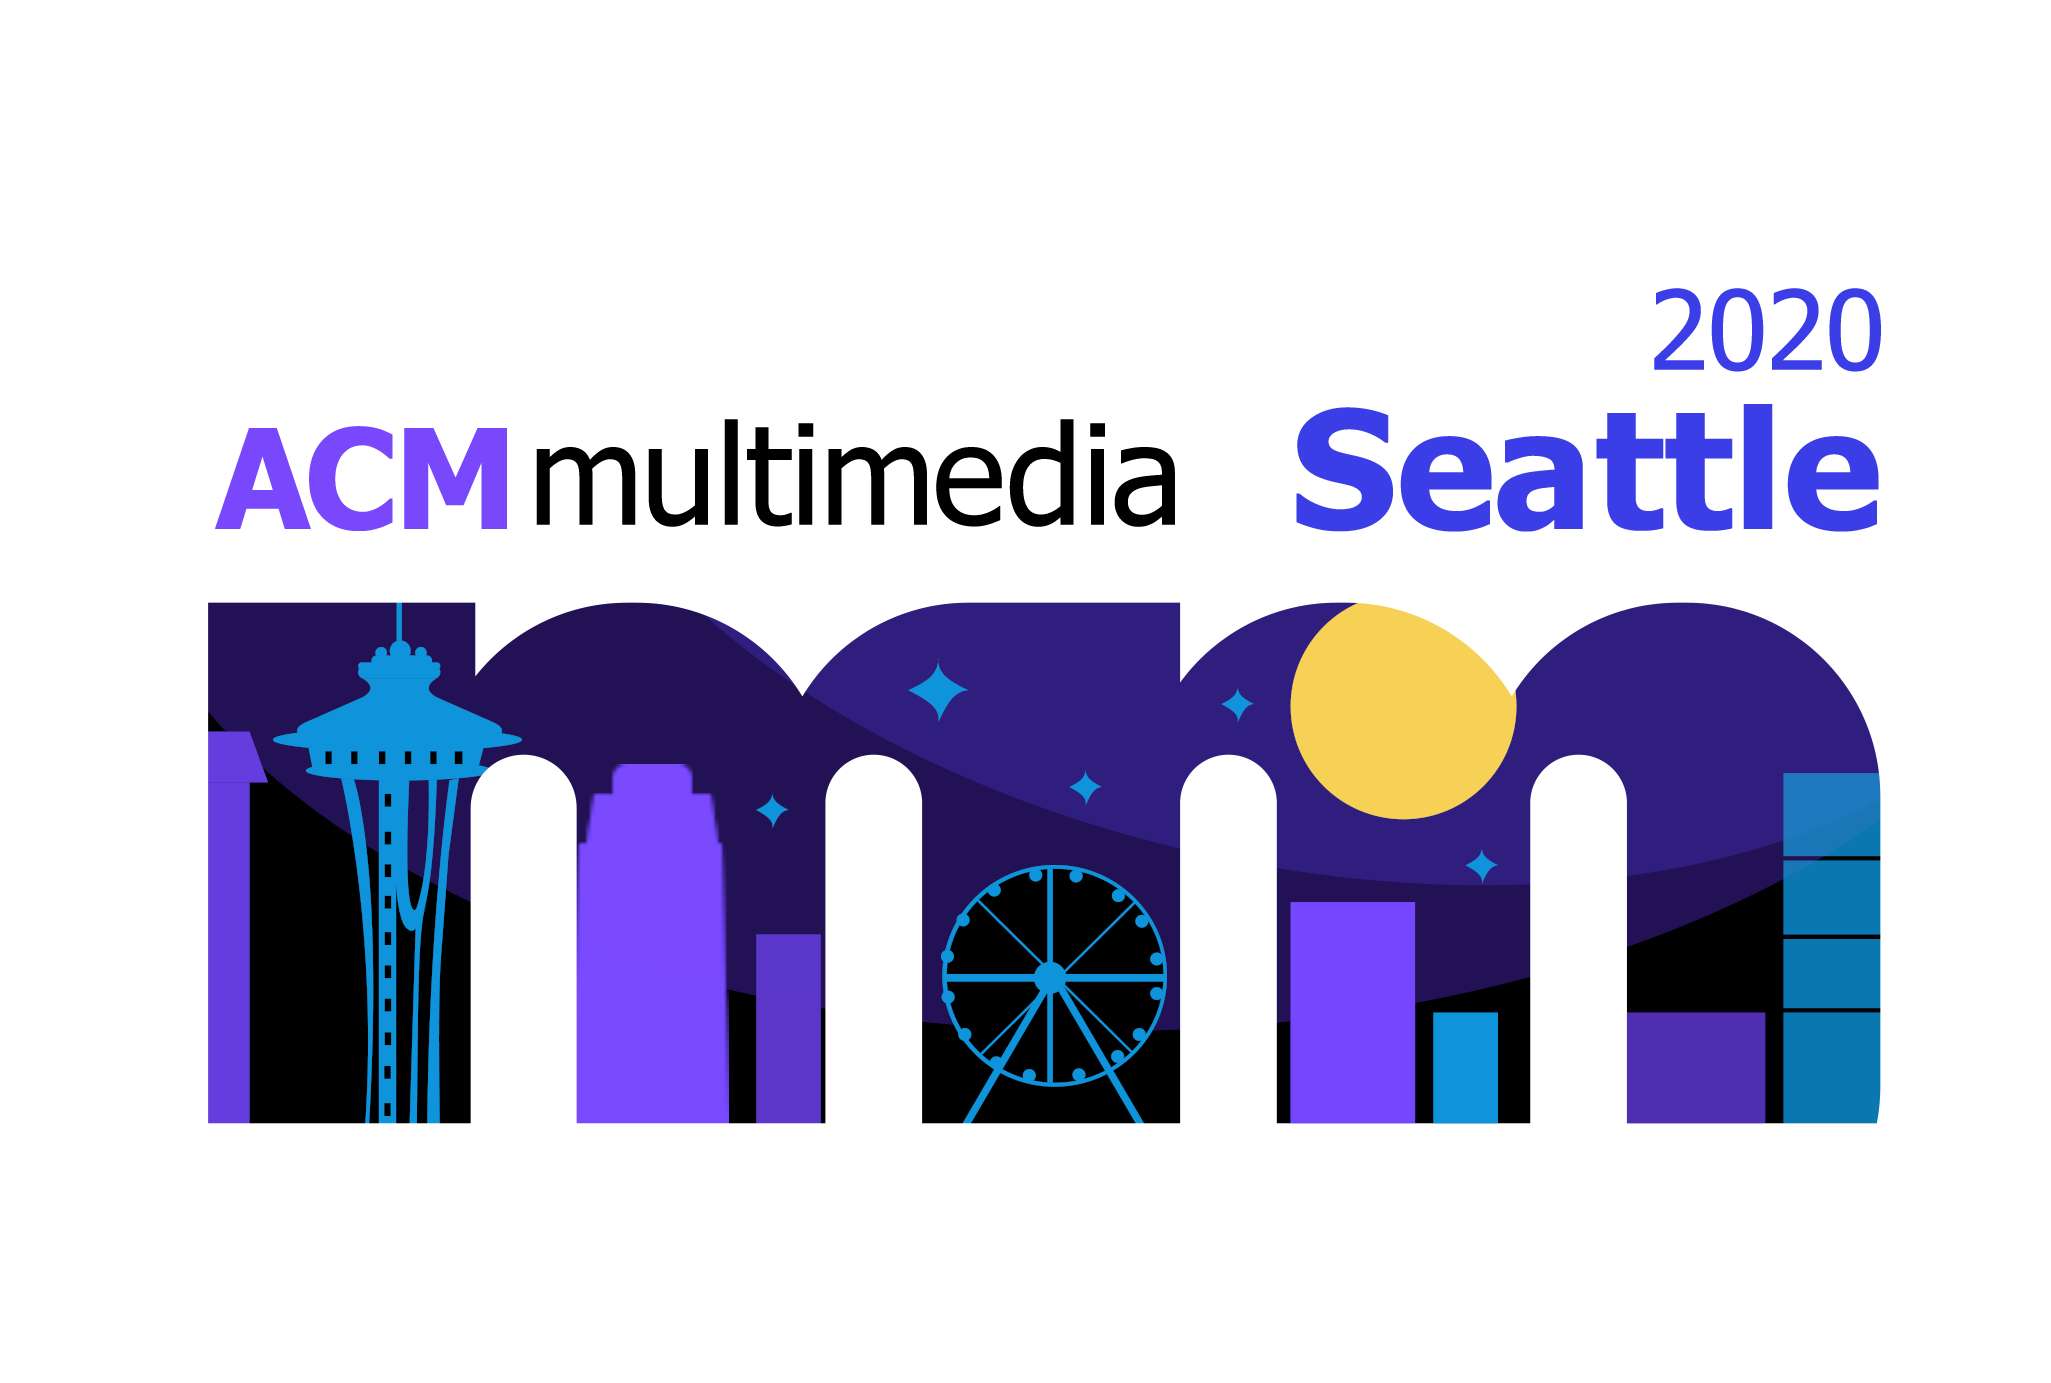 ACM MULTIMEDIA CONFERENCE 2020